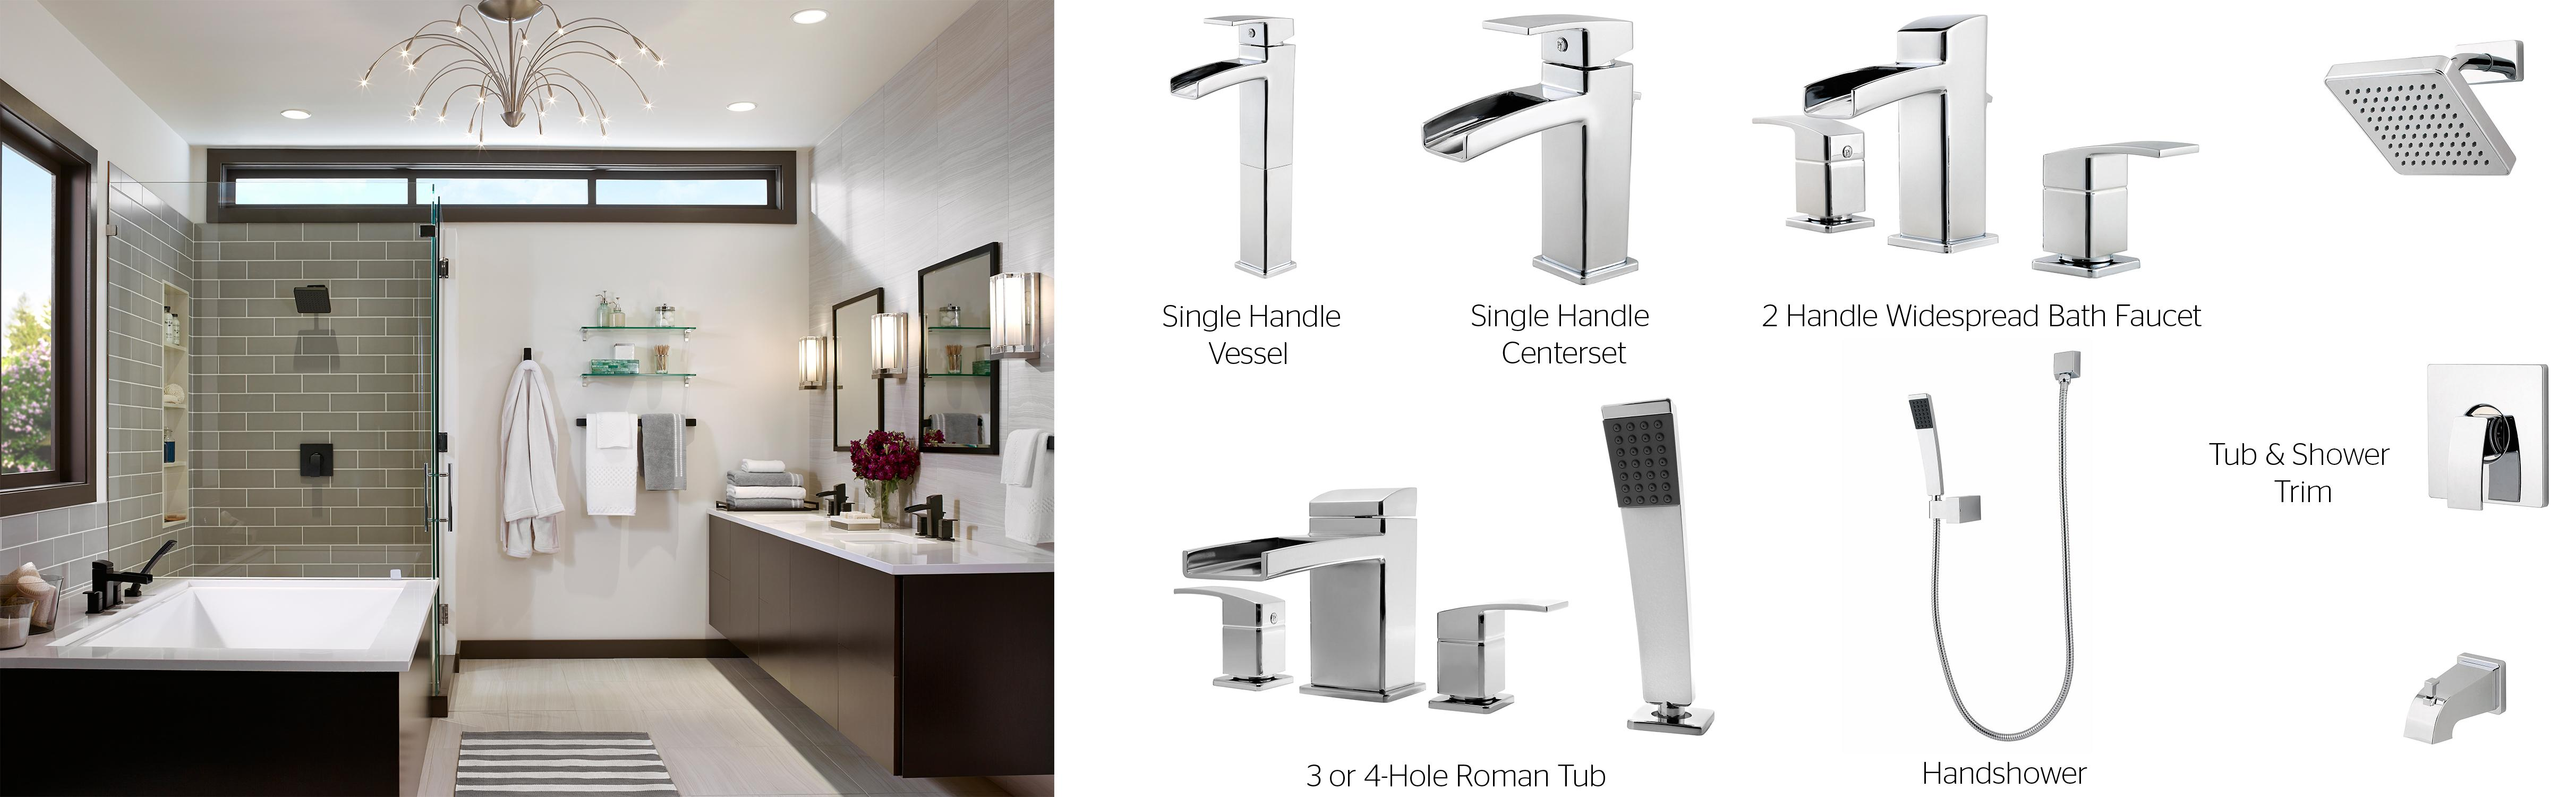 two faucet kraus widespread bathroom lavatory inch com kraususa handle disontinued cirrus fus